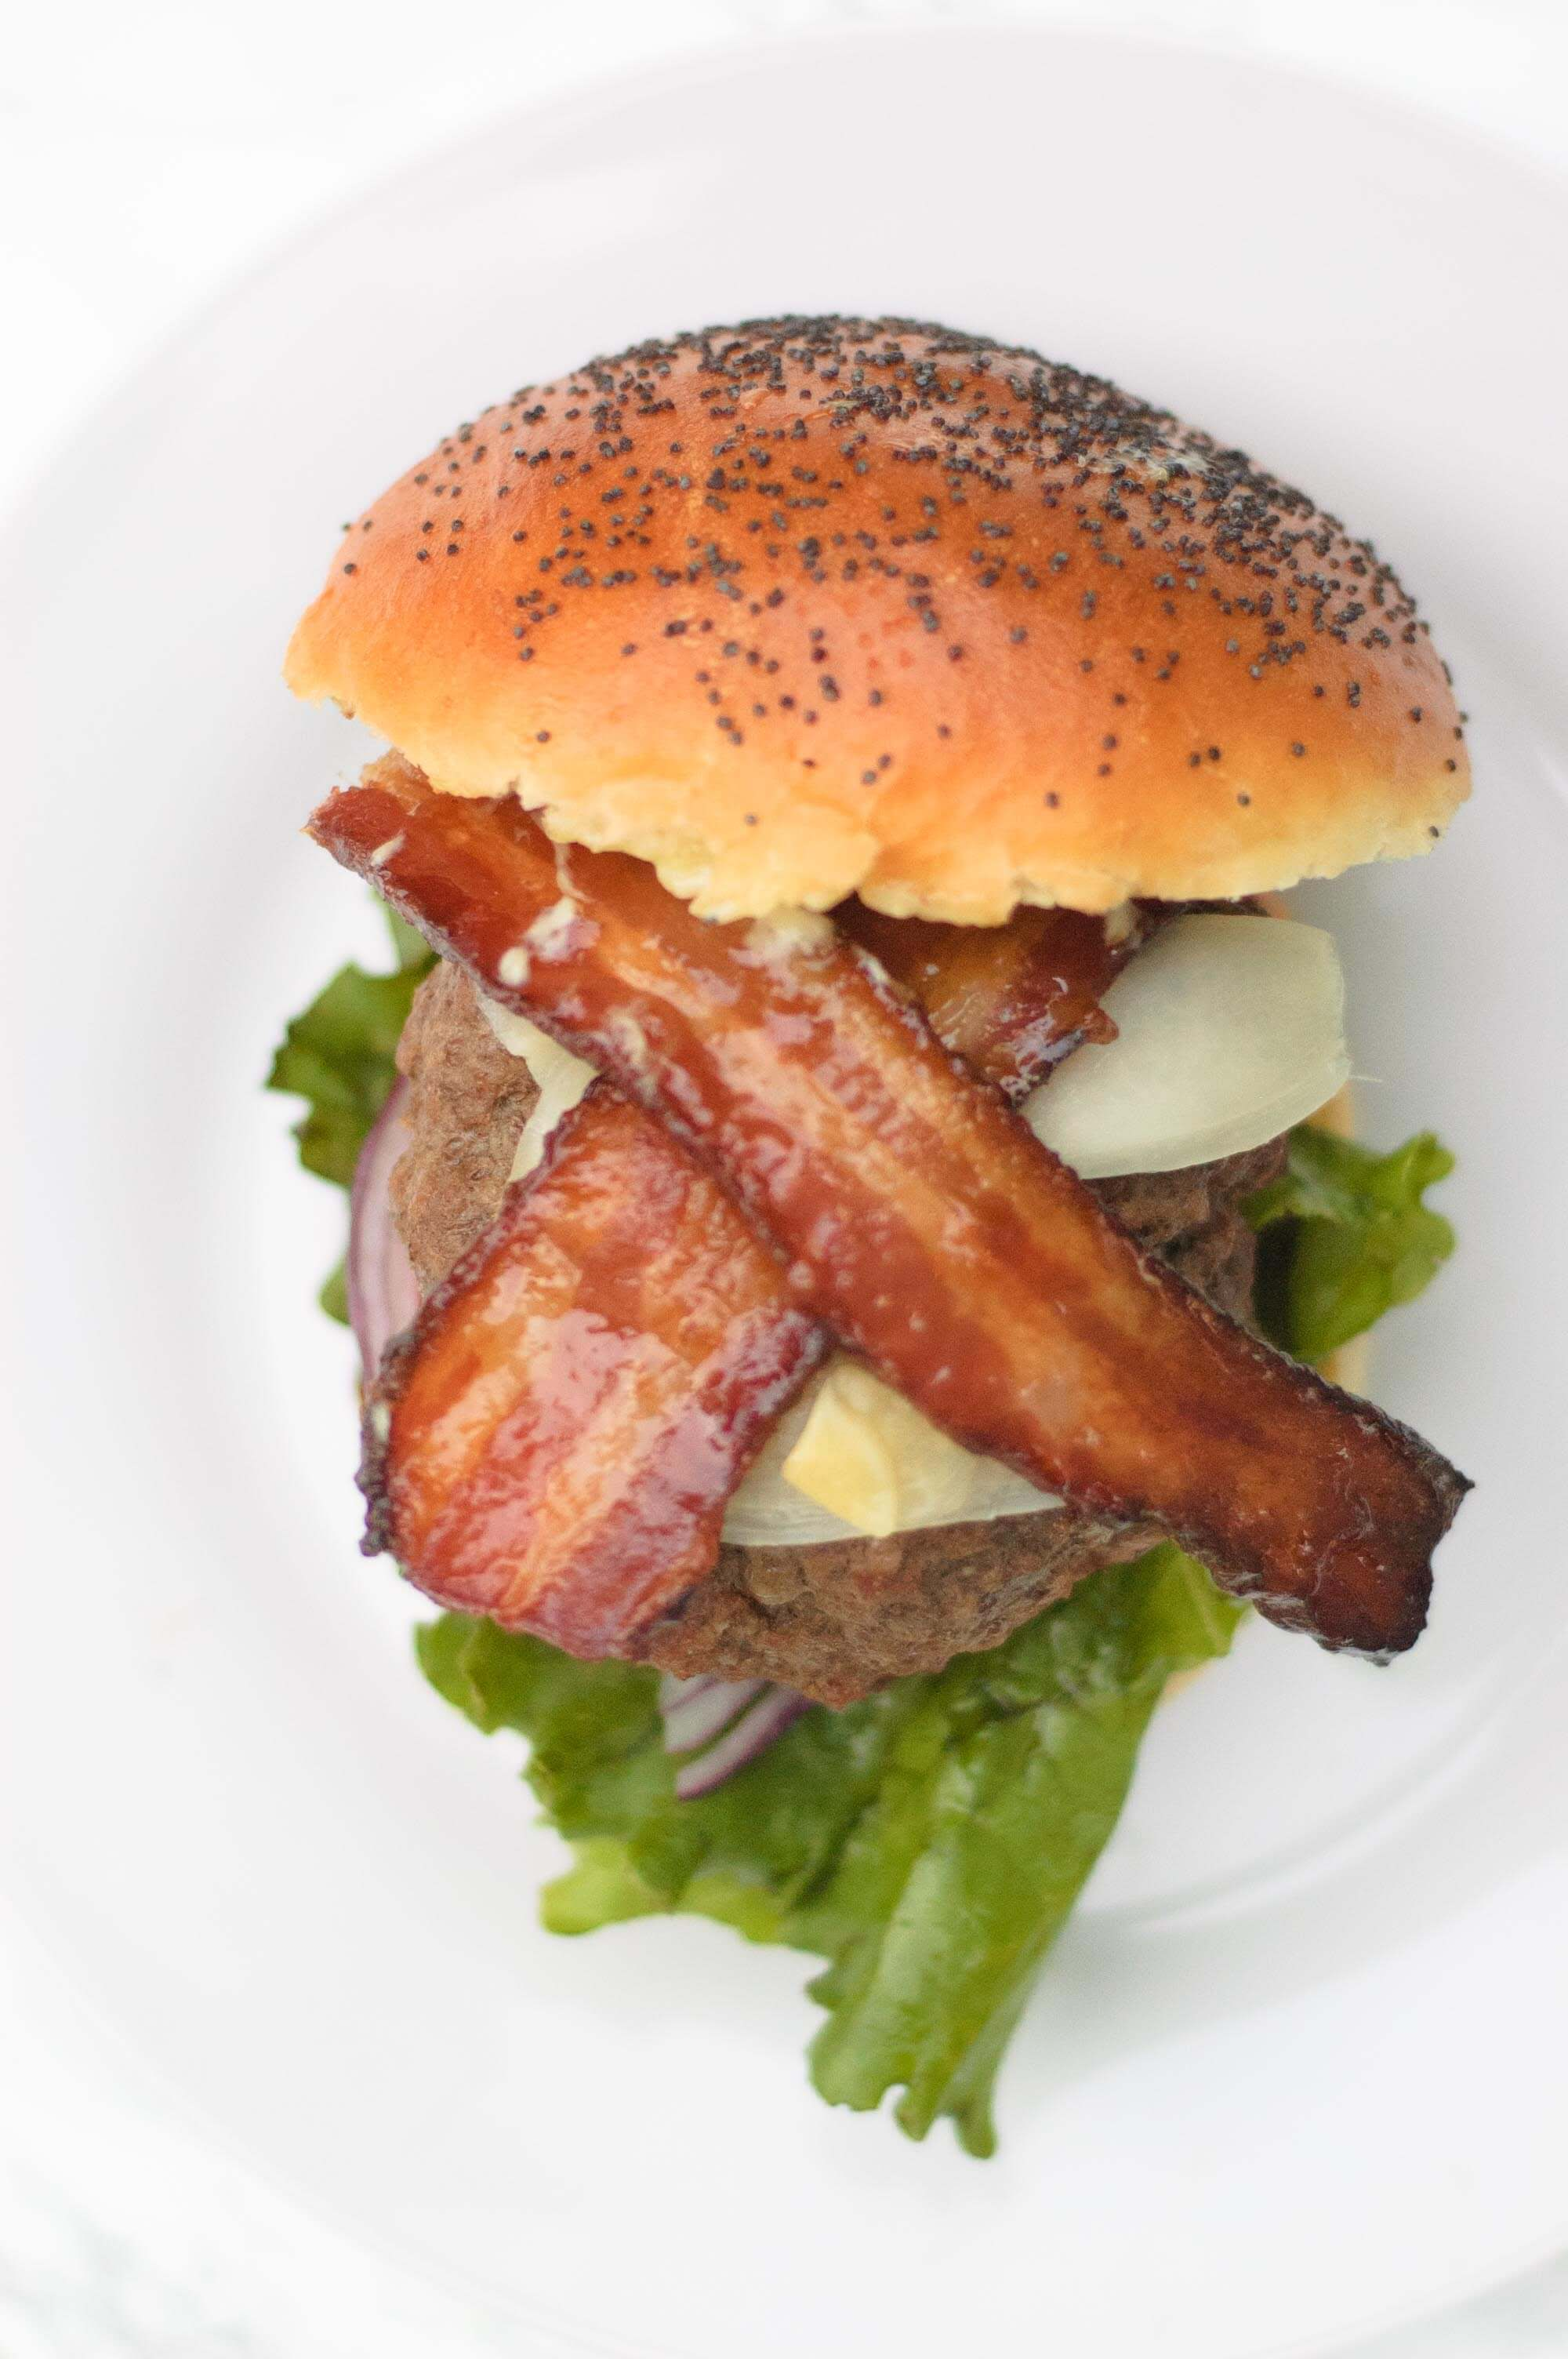 overhead view of the wasabi burger. The bacon is crisscrossed and the bun is on the side.